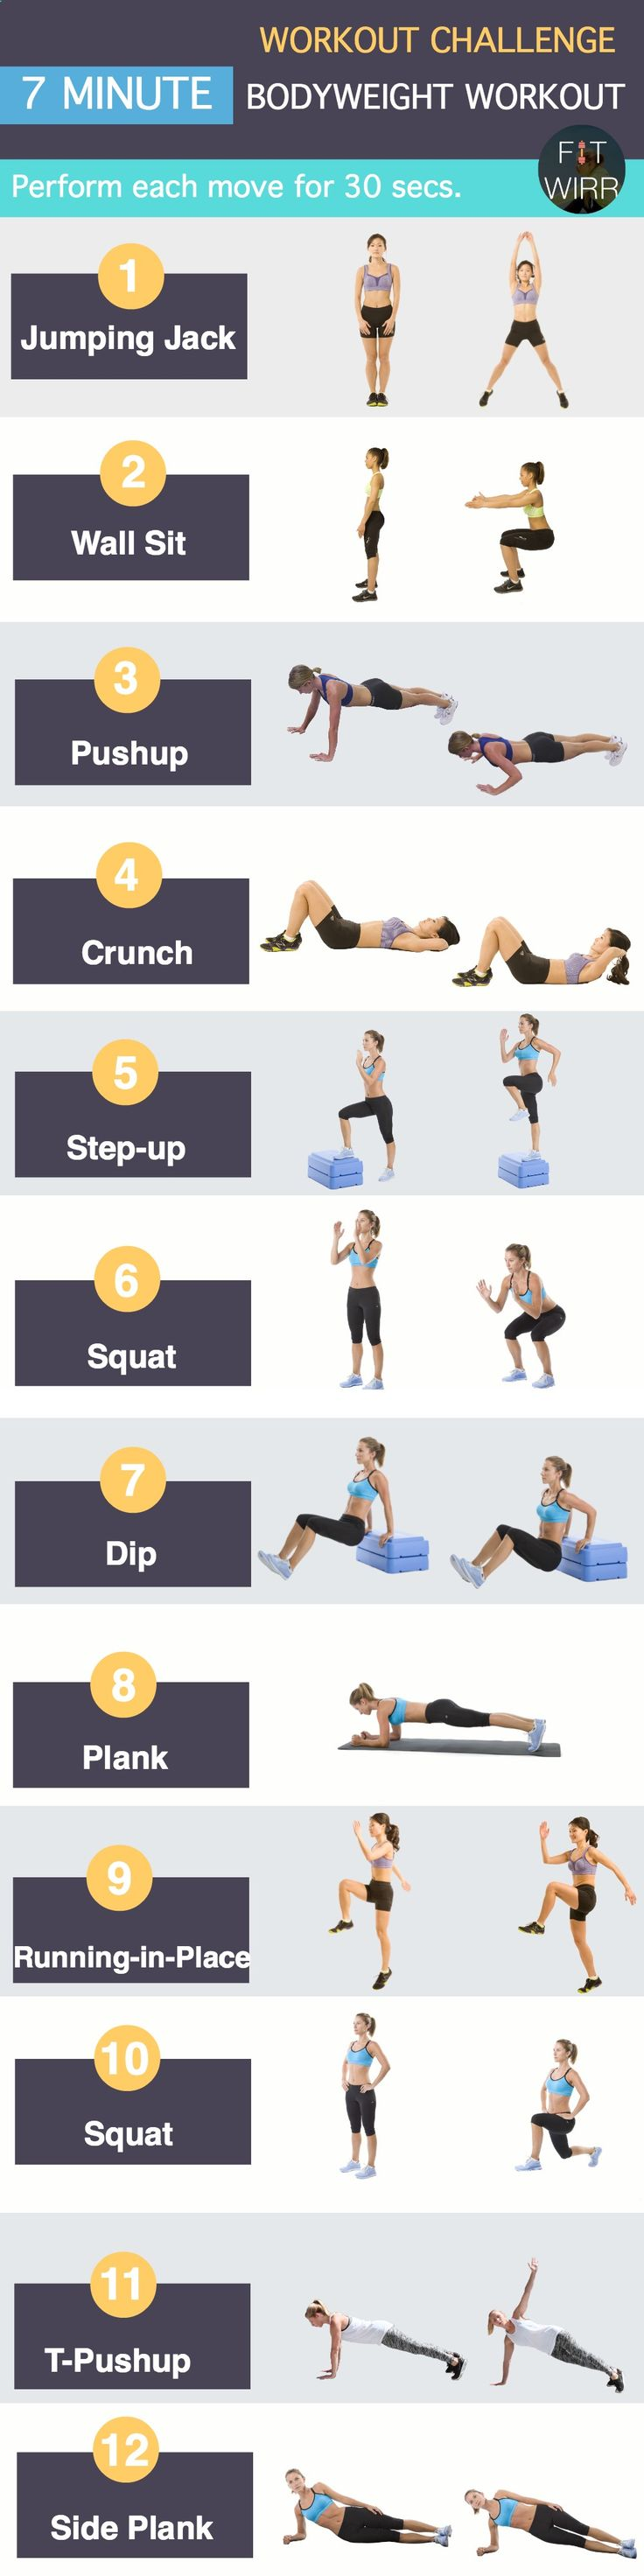 Yoga-Get Your Sexiest Body Ever Without - 7 MINUTE of 12 EXERCISE BodyWeight HIIT Workout Routine Get your sexiest body ever without,crunches,cardio,or ever setting foot in a gym